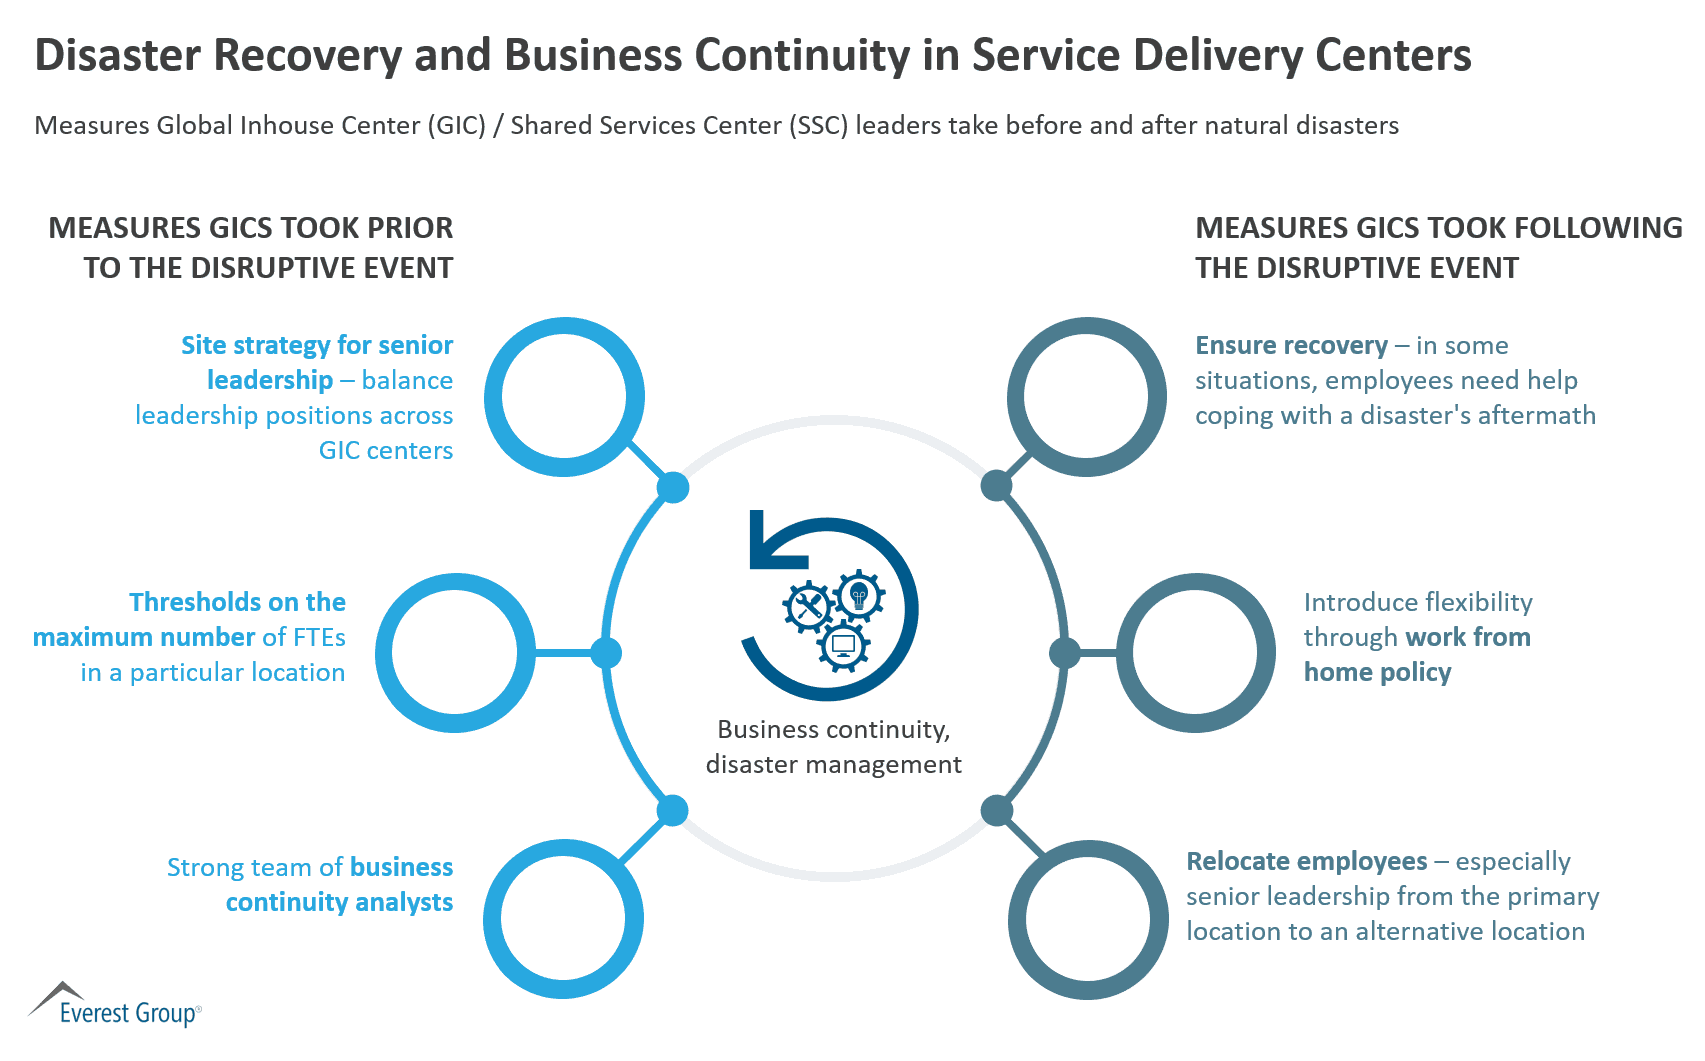 Disaster Recovery and Business Continuity in Service Delivery Centers